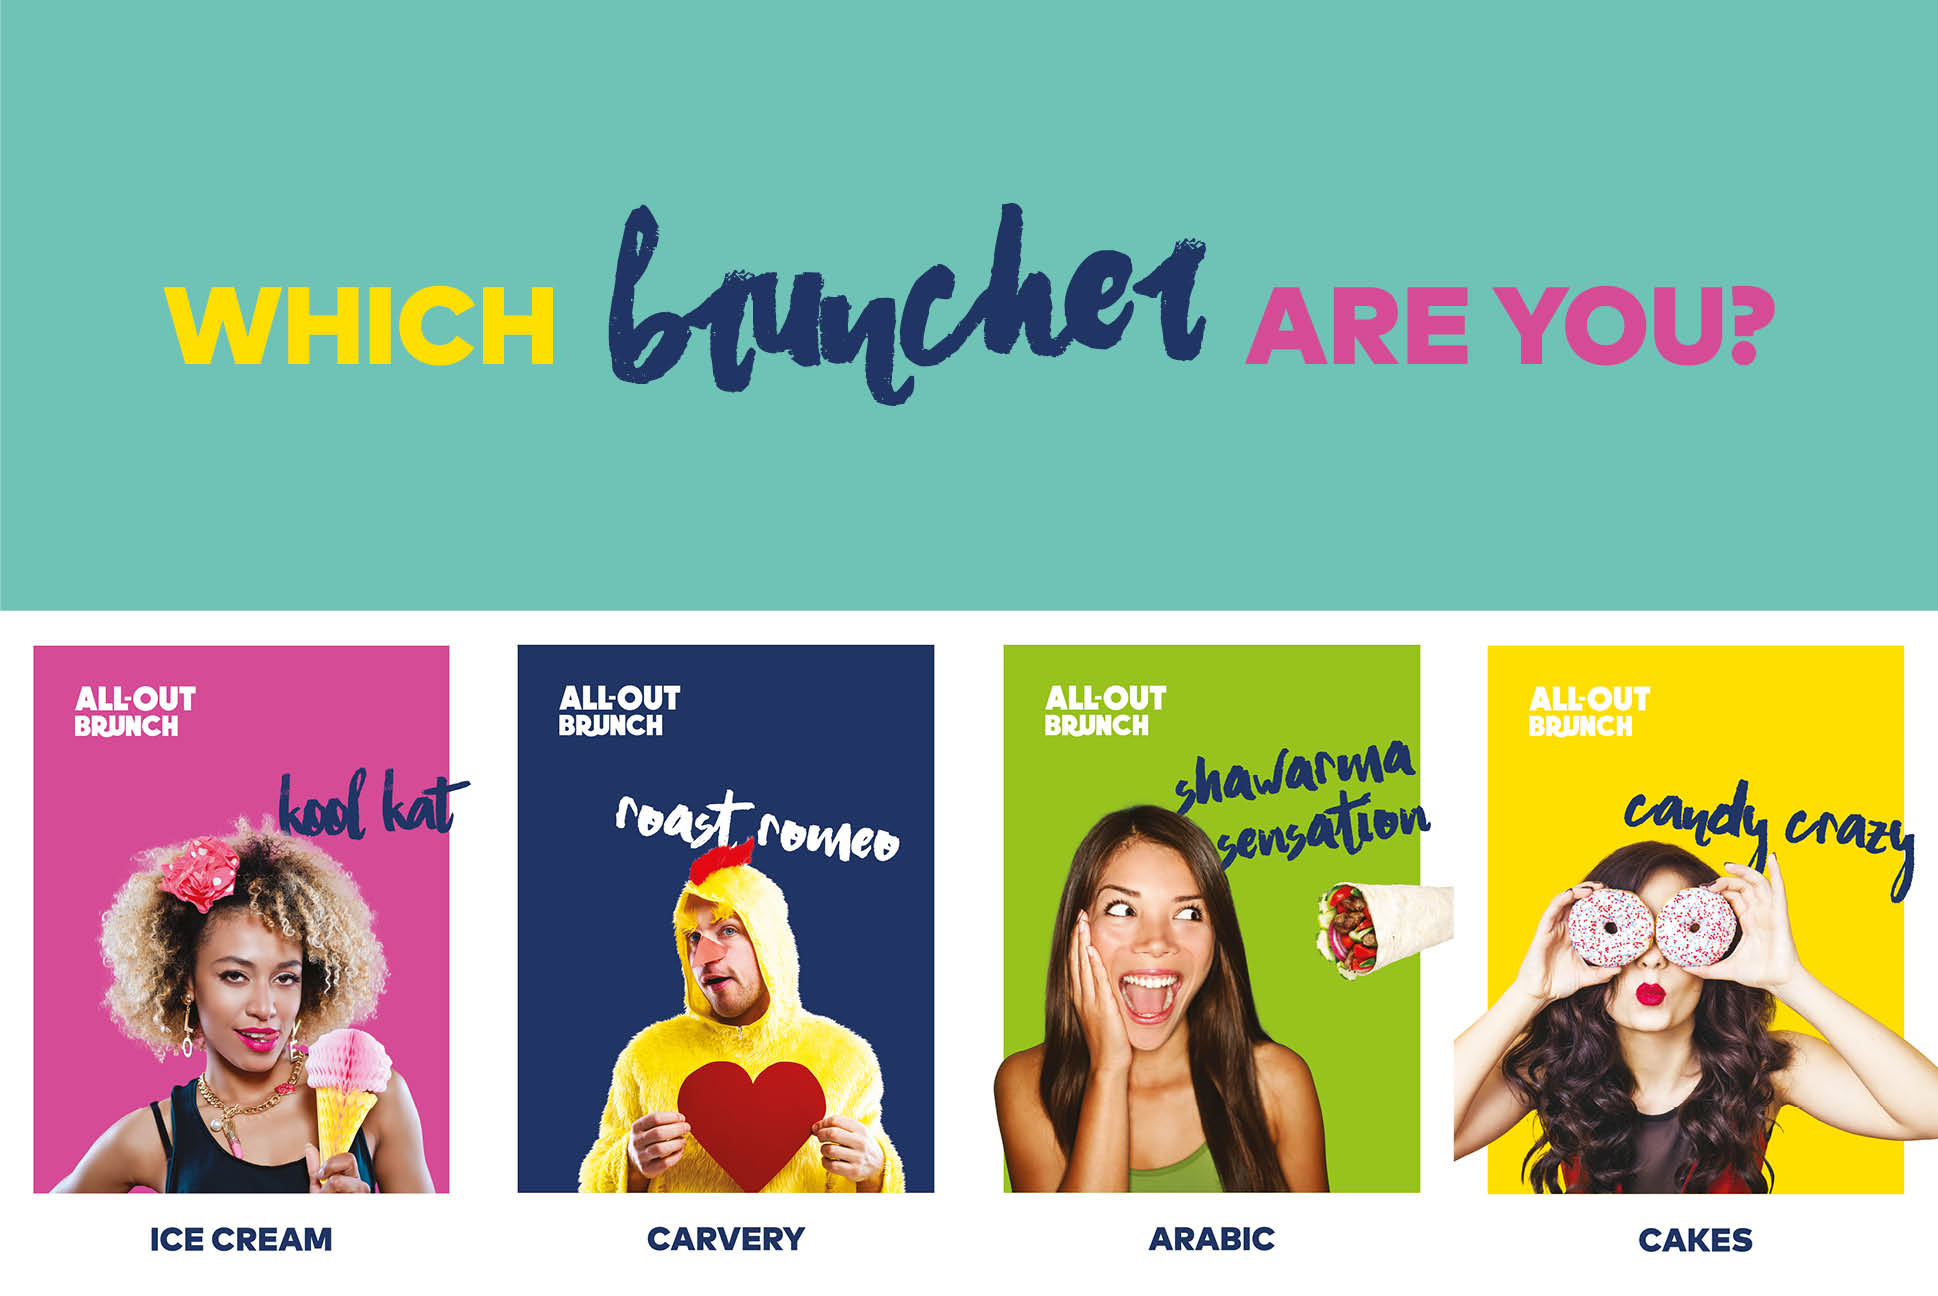 All-out Brunch Rotana Characters